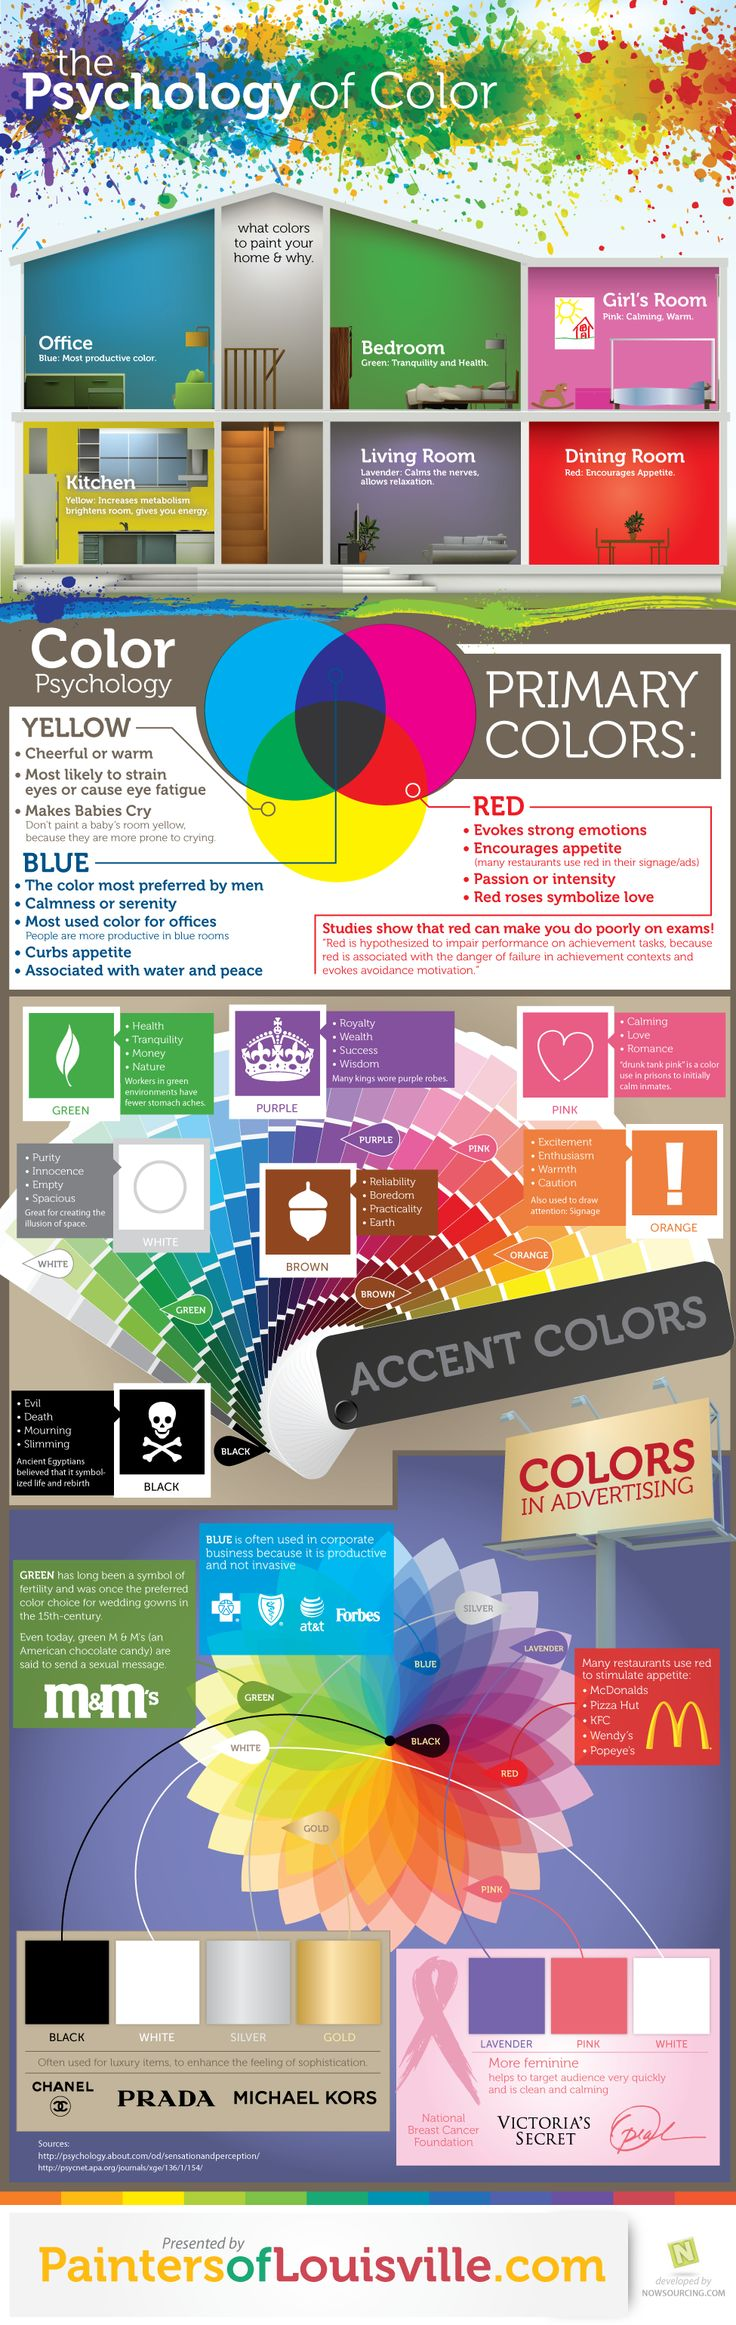 The Psychology of Color - Album on Imgur